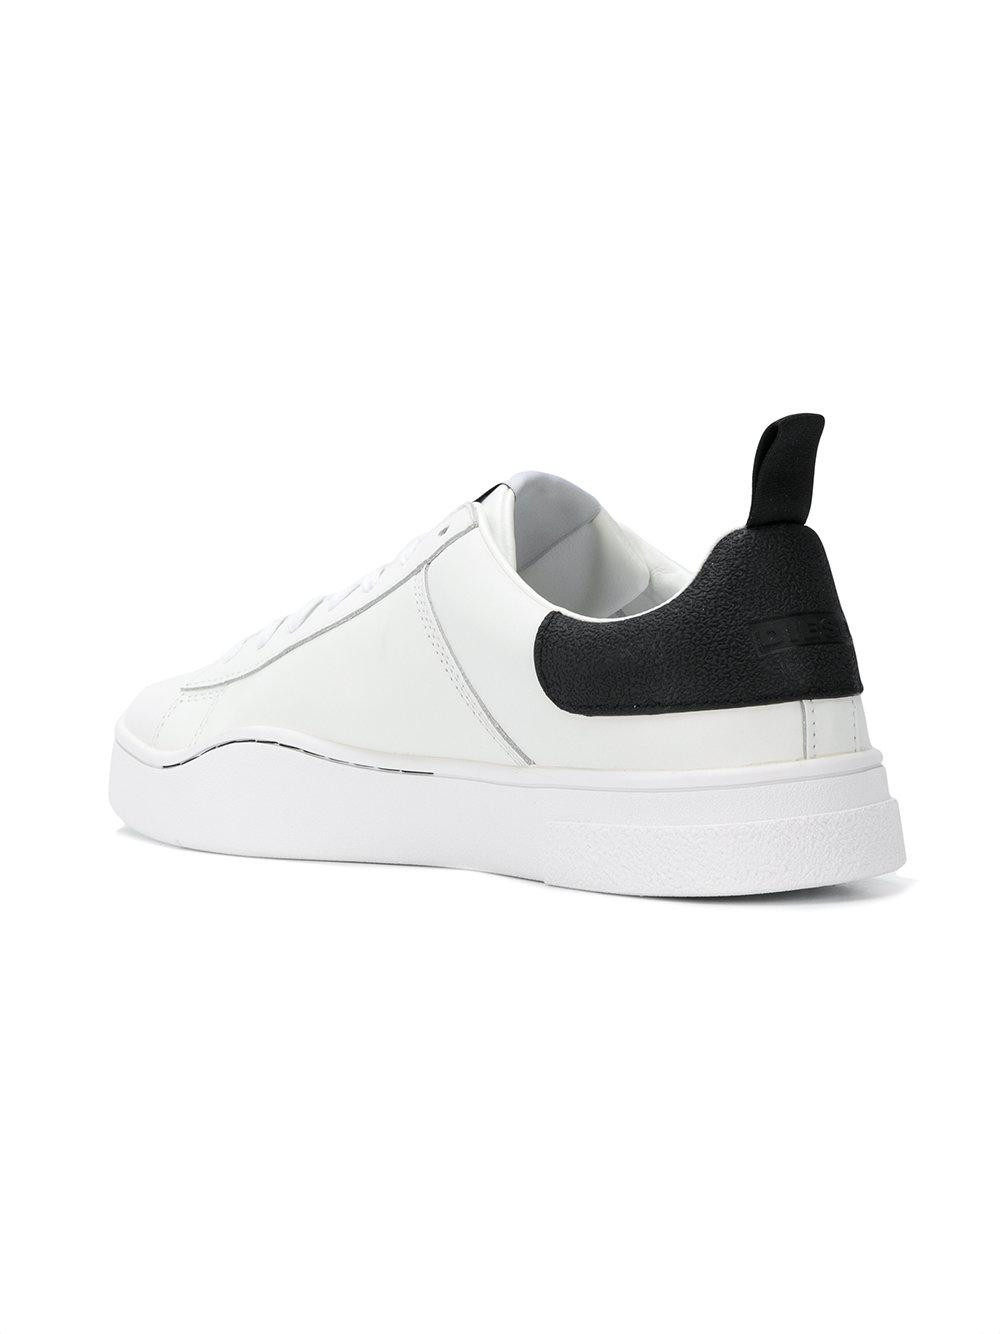 sale cheap Diesel S-Cleaver low sneakers stockist online shop for sale discount best prices discount exclusive vosIc